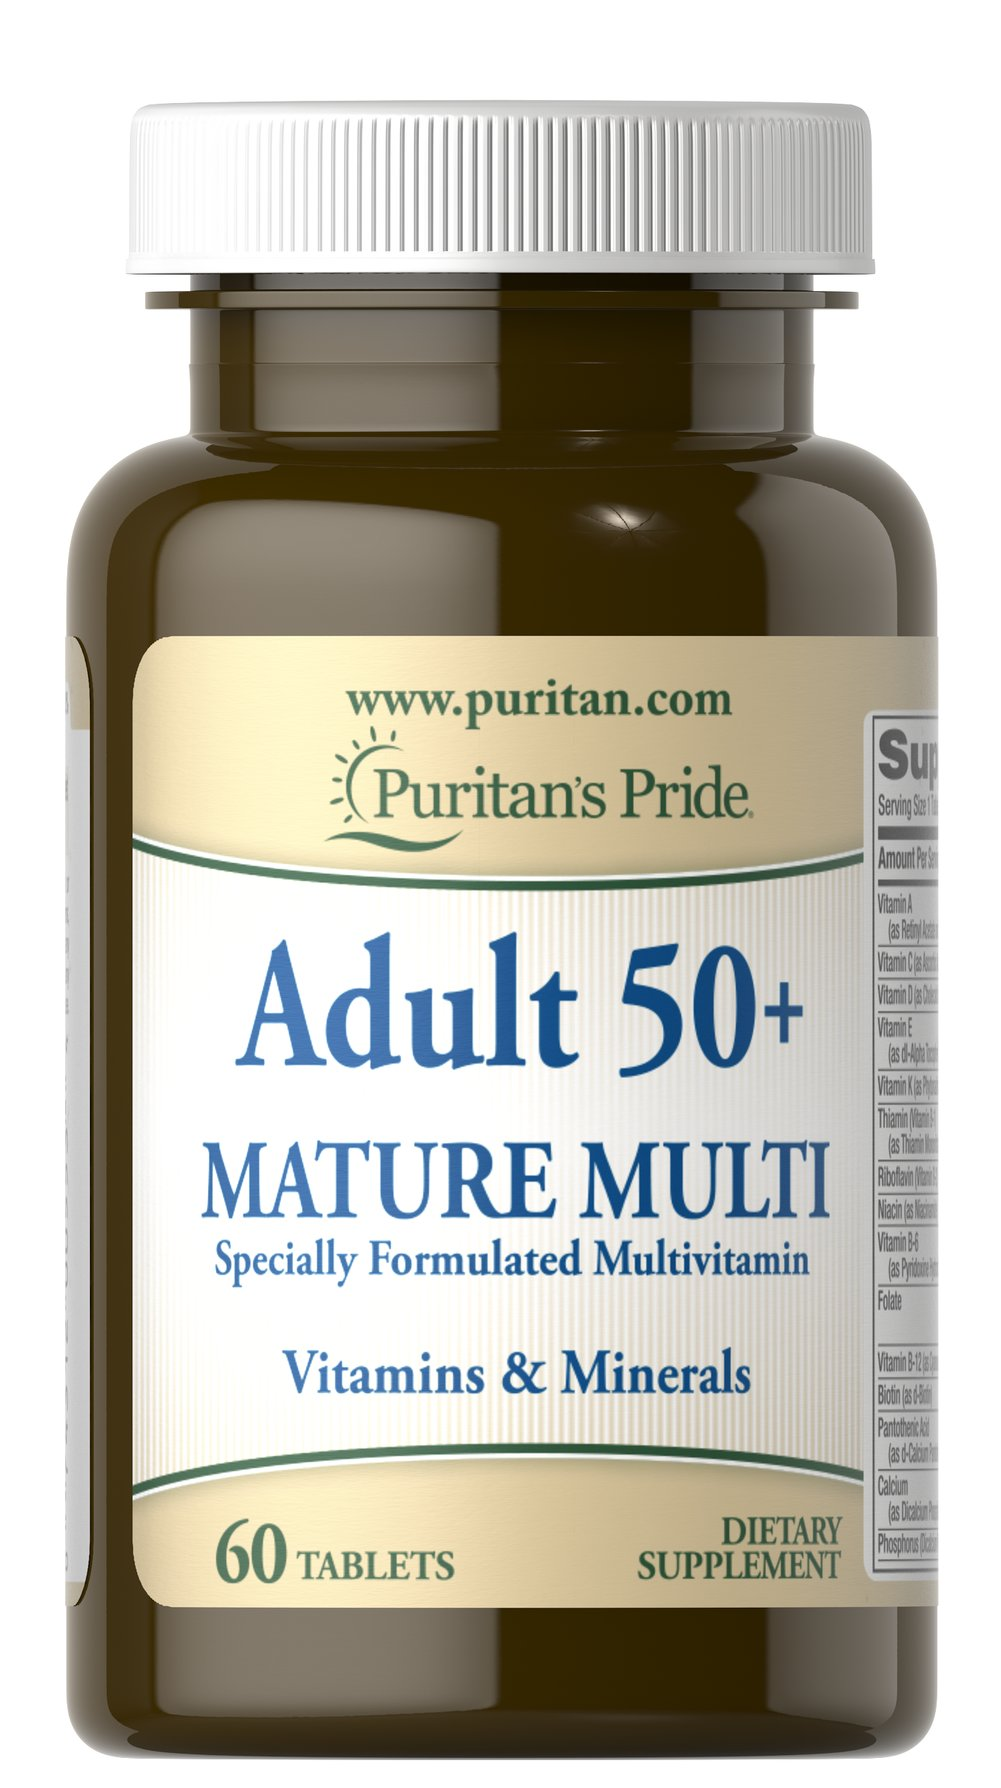 Adult 50+ Mature Multivitamin